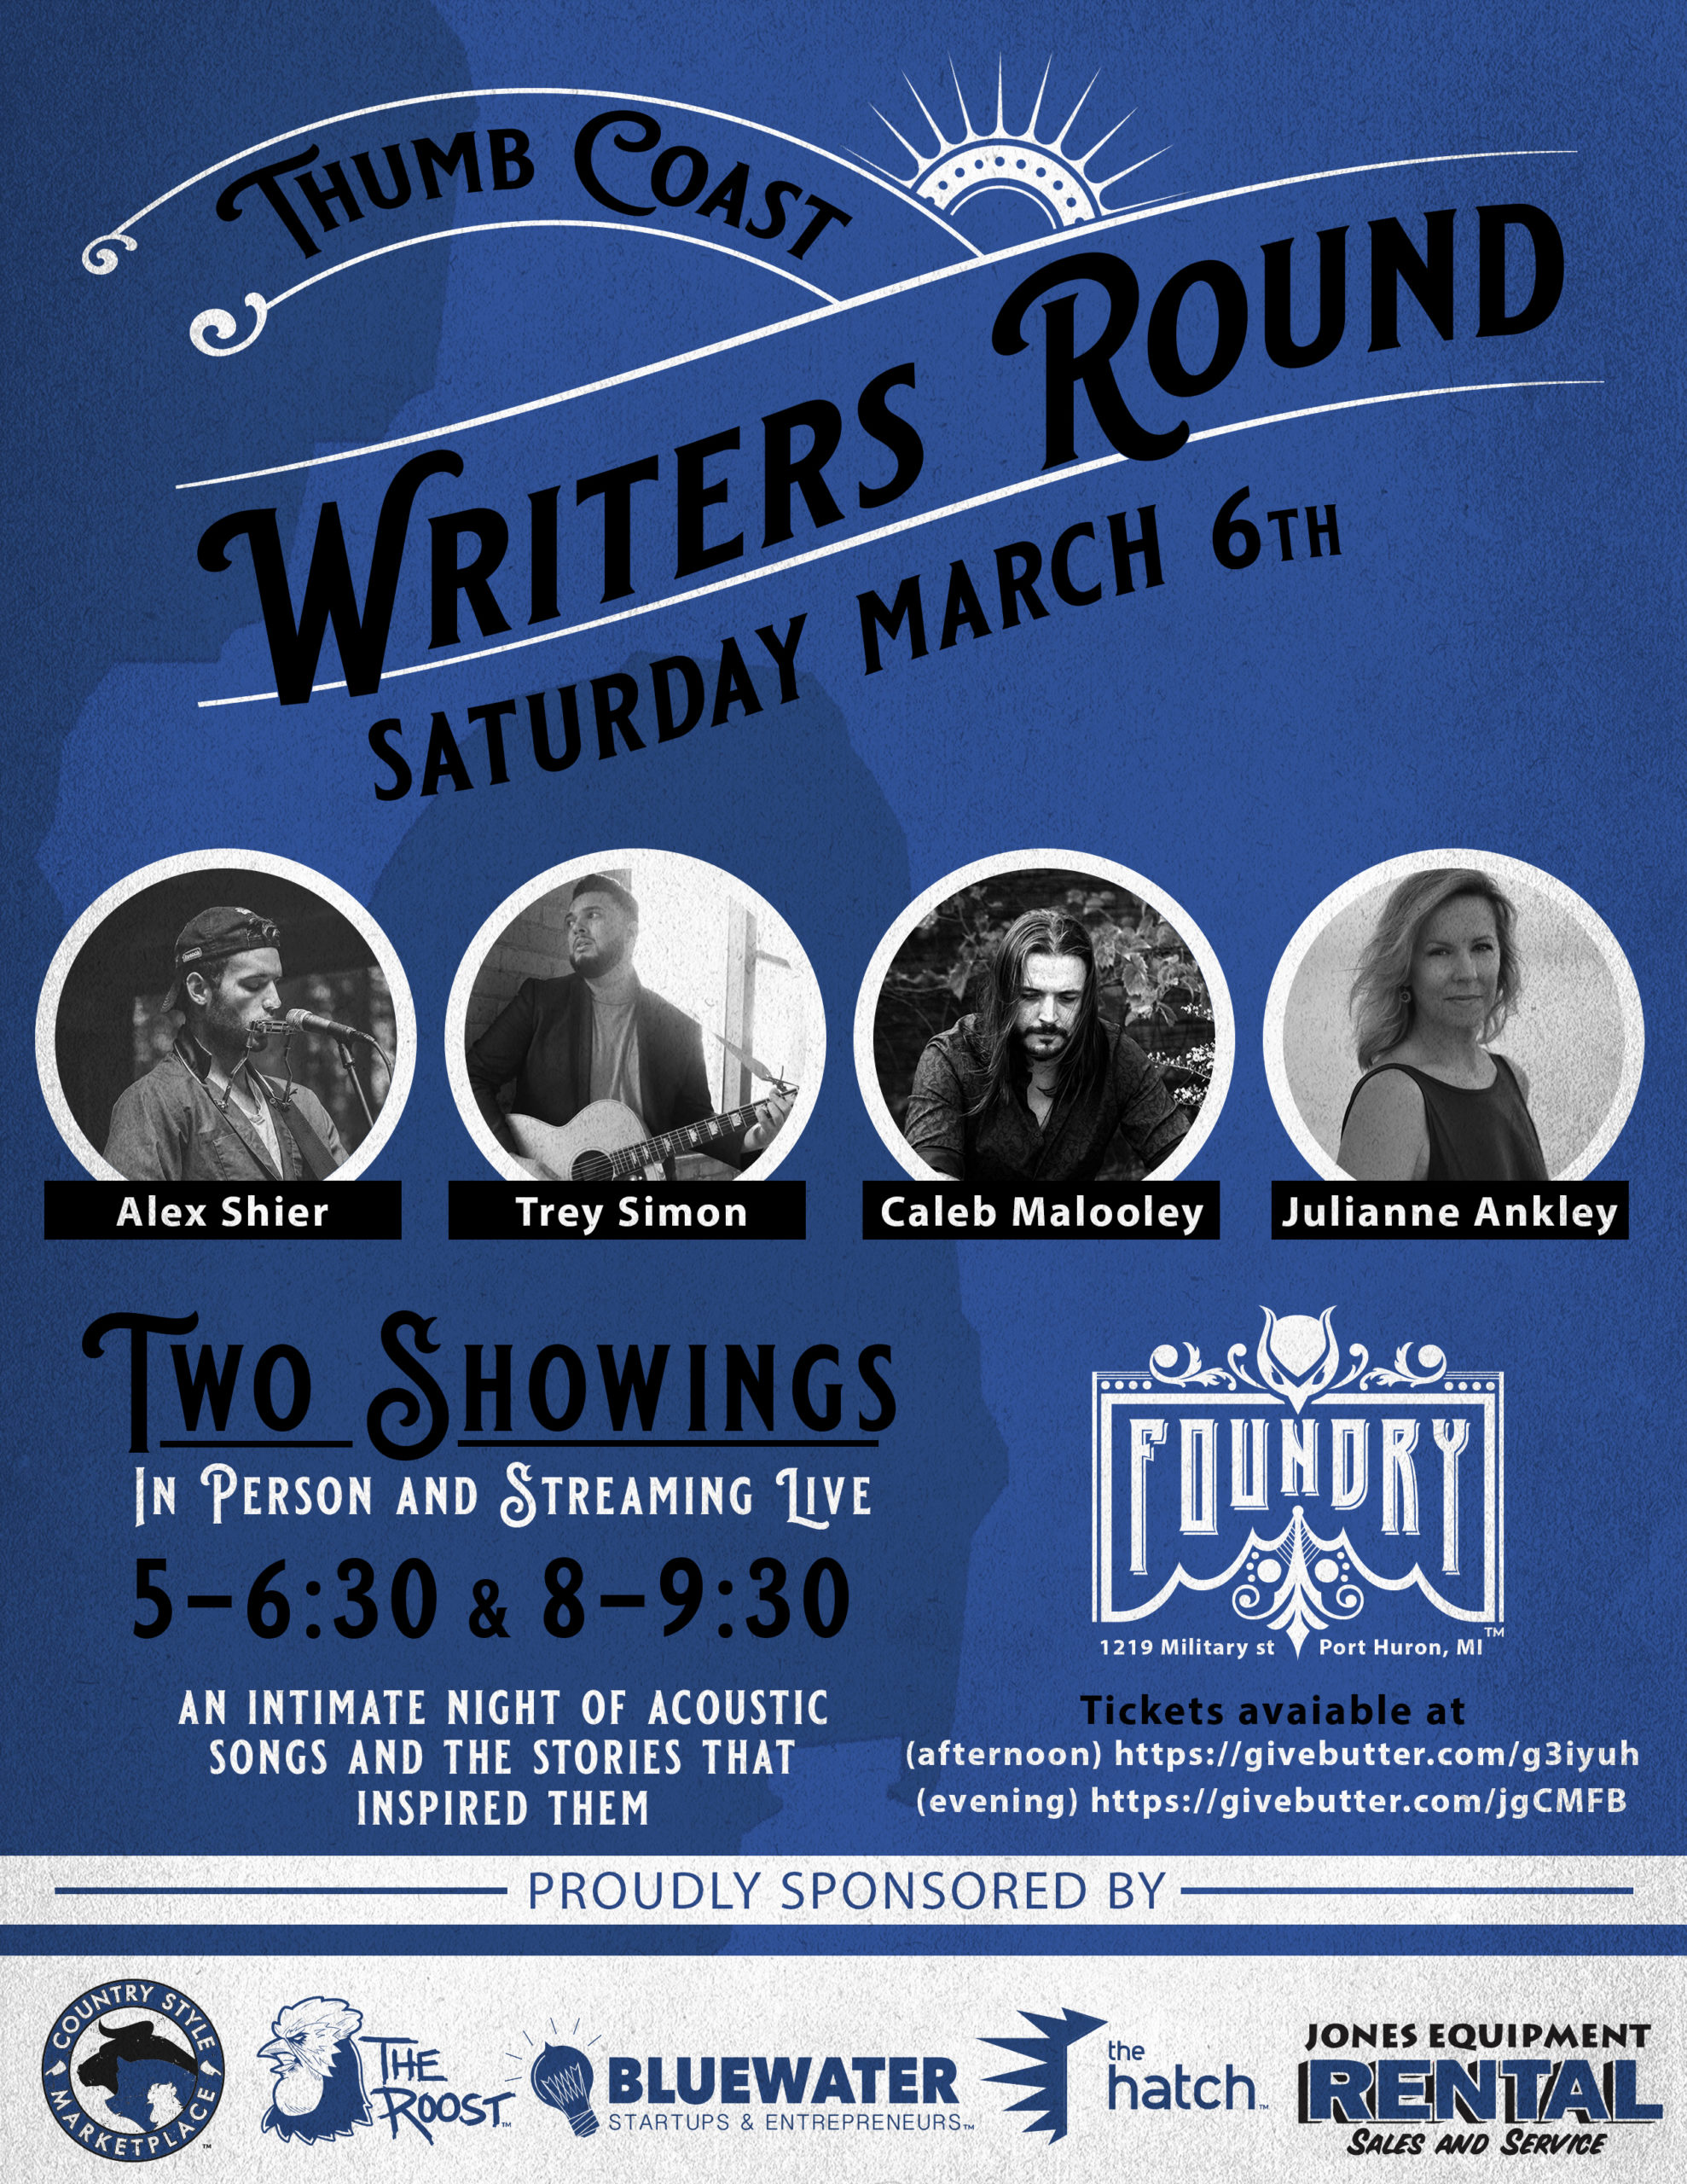 thumb coast writers round poster image and details